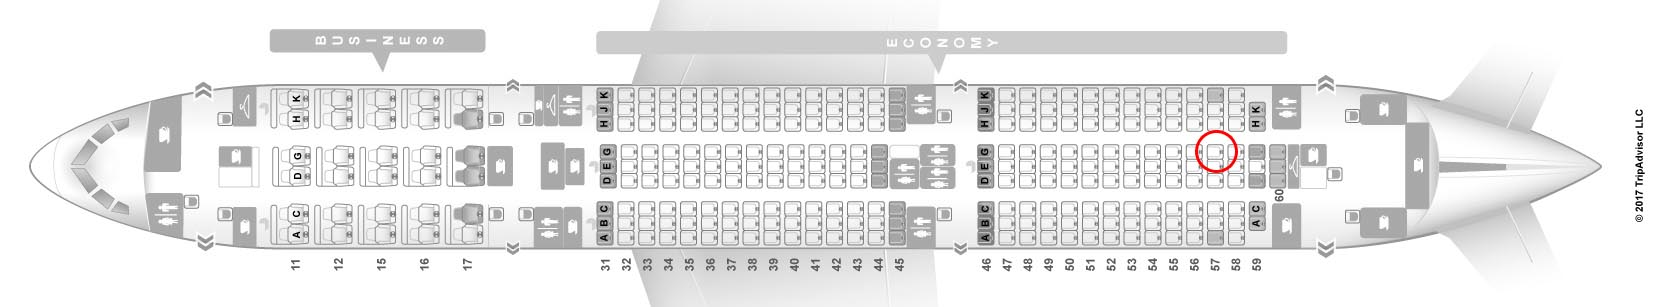 Hainan Airlines 787-9 seat map